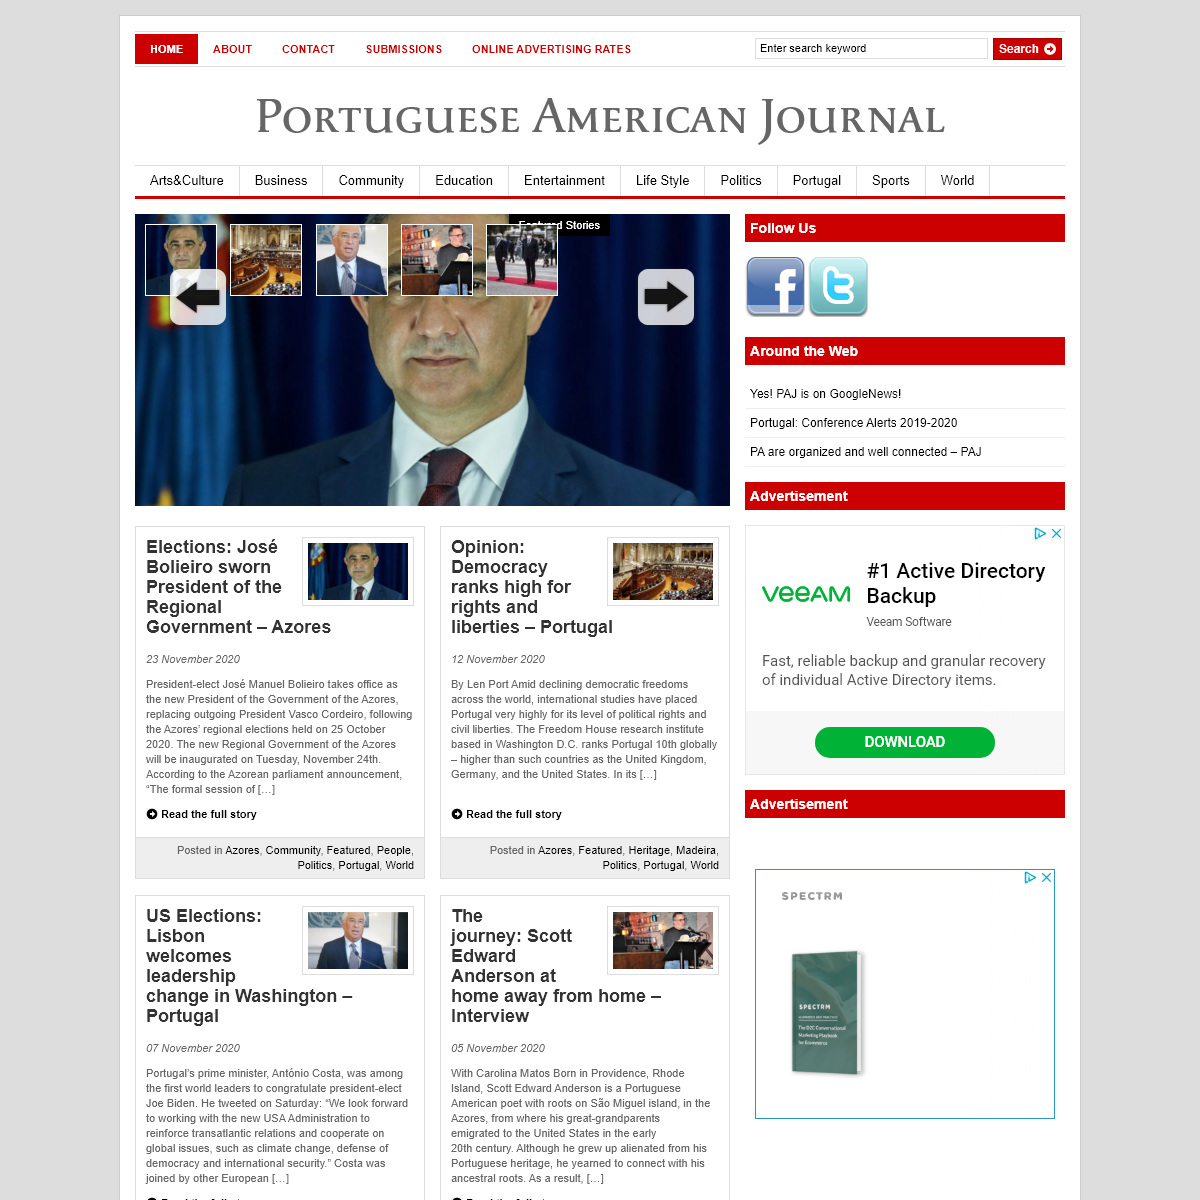 Portuguese American Journal - News and more for the Portuguese American Community